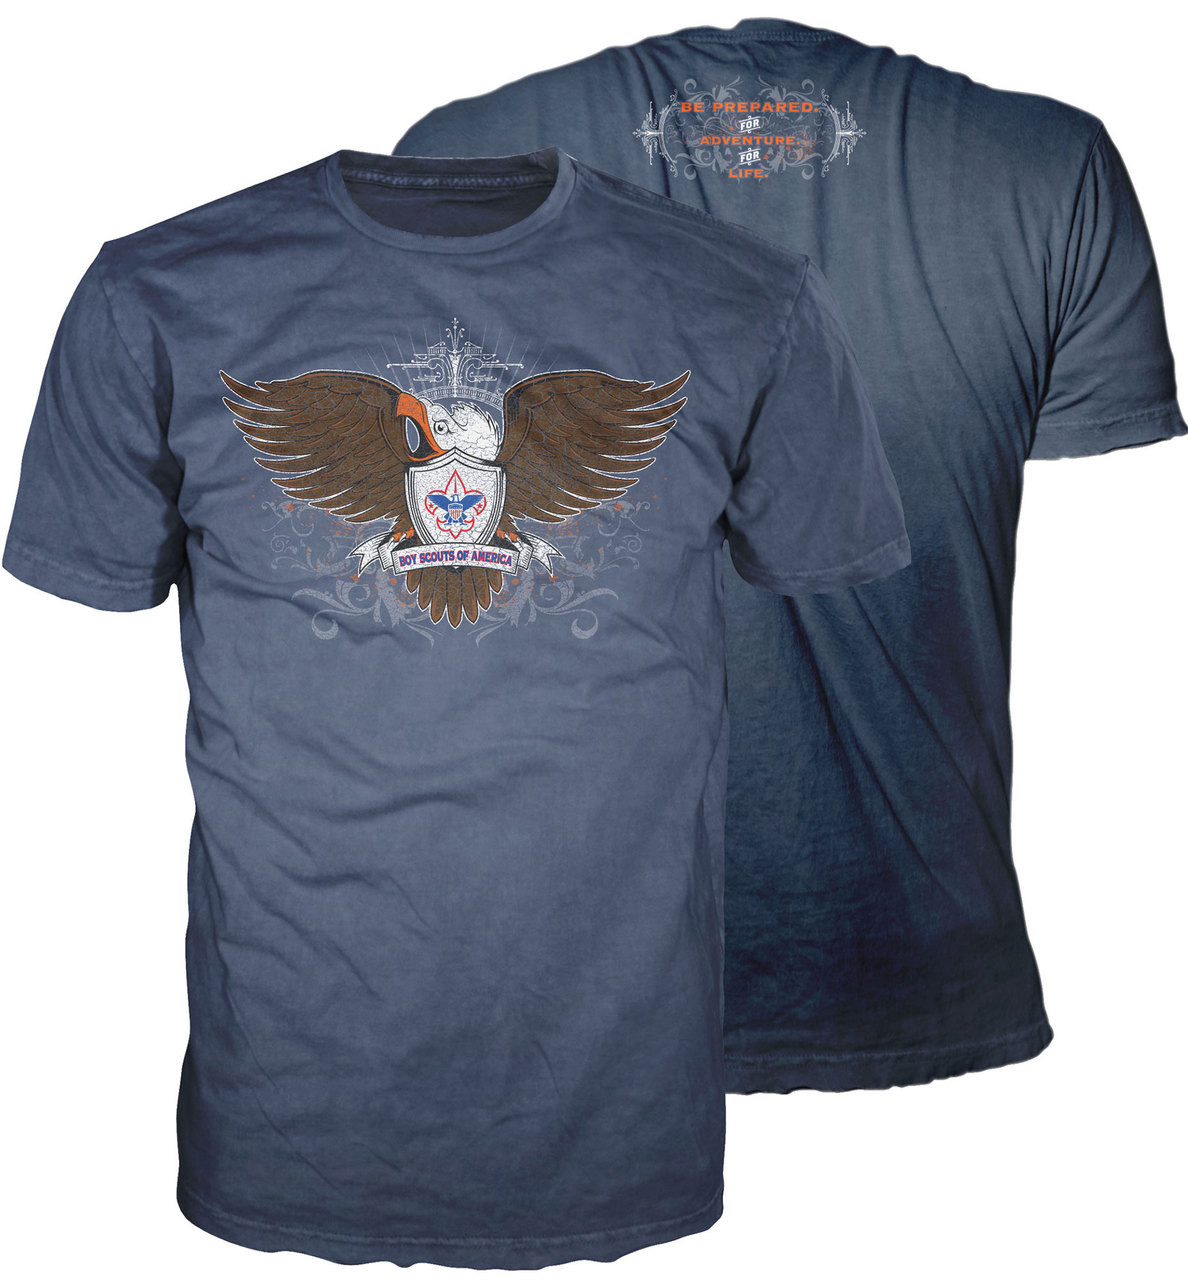 Eagle Scout BSA Graphic Tee